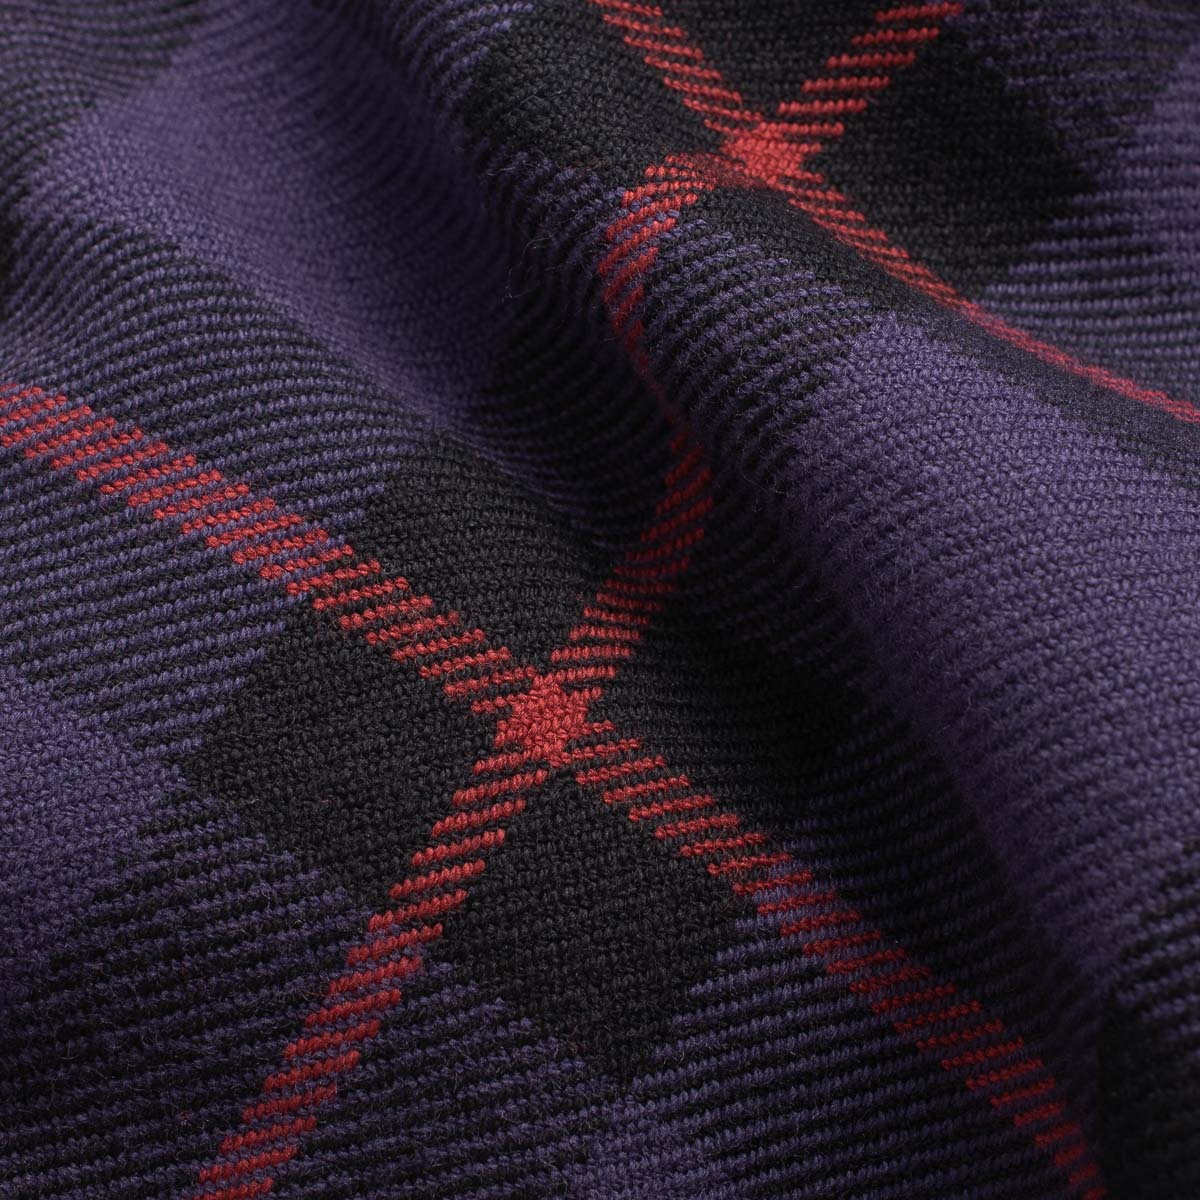 IHSH-260 - Flannel Tartan Check Western Shirt Purple